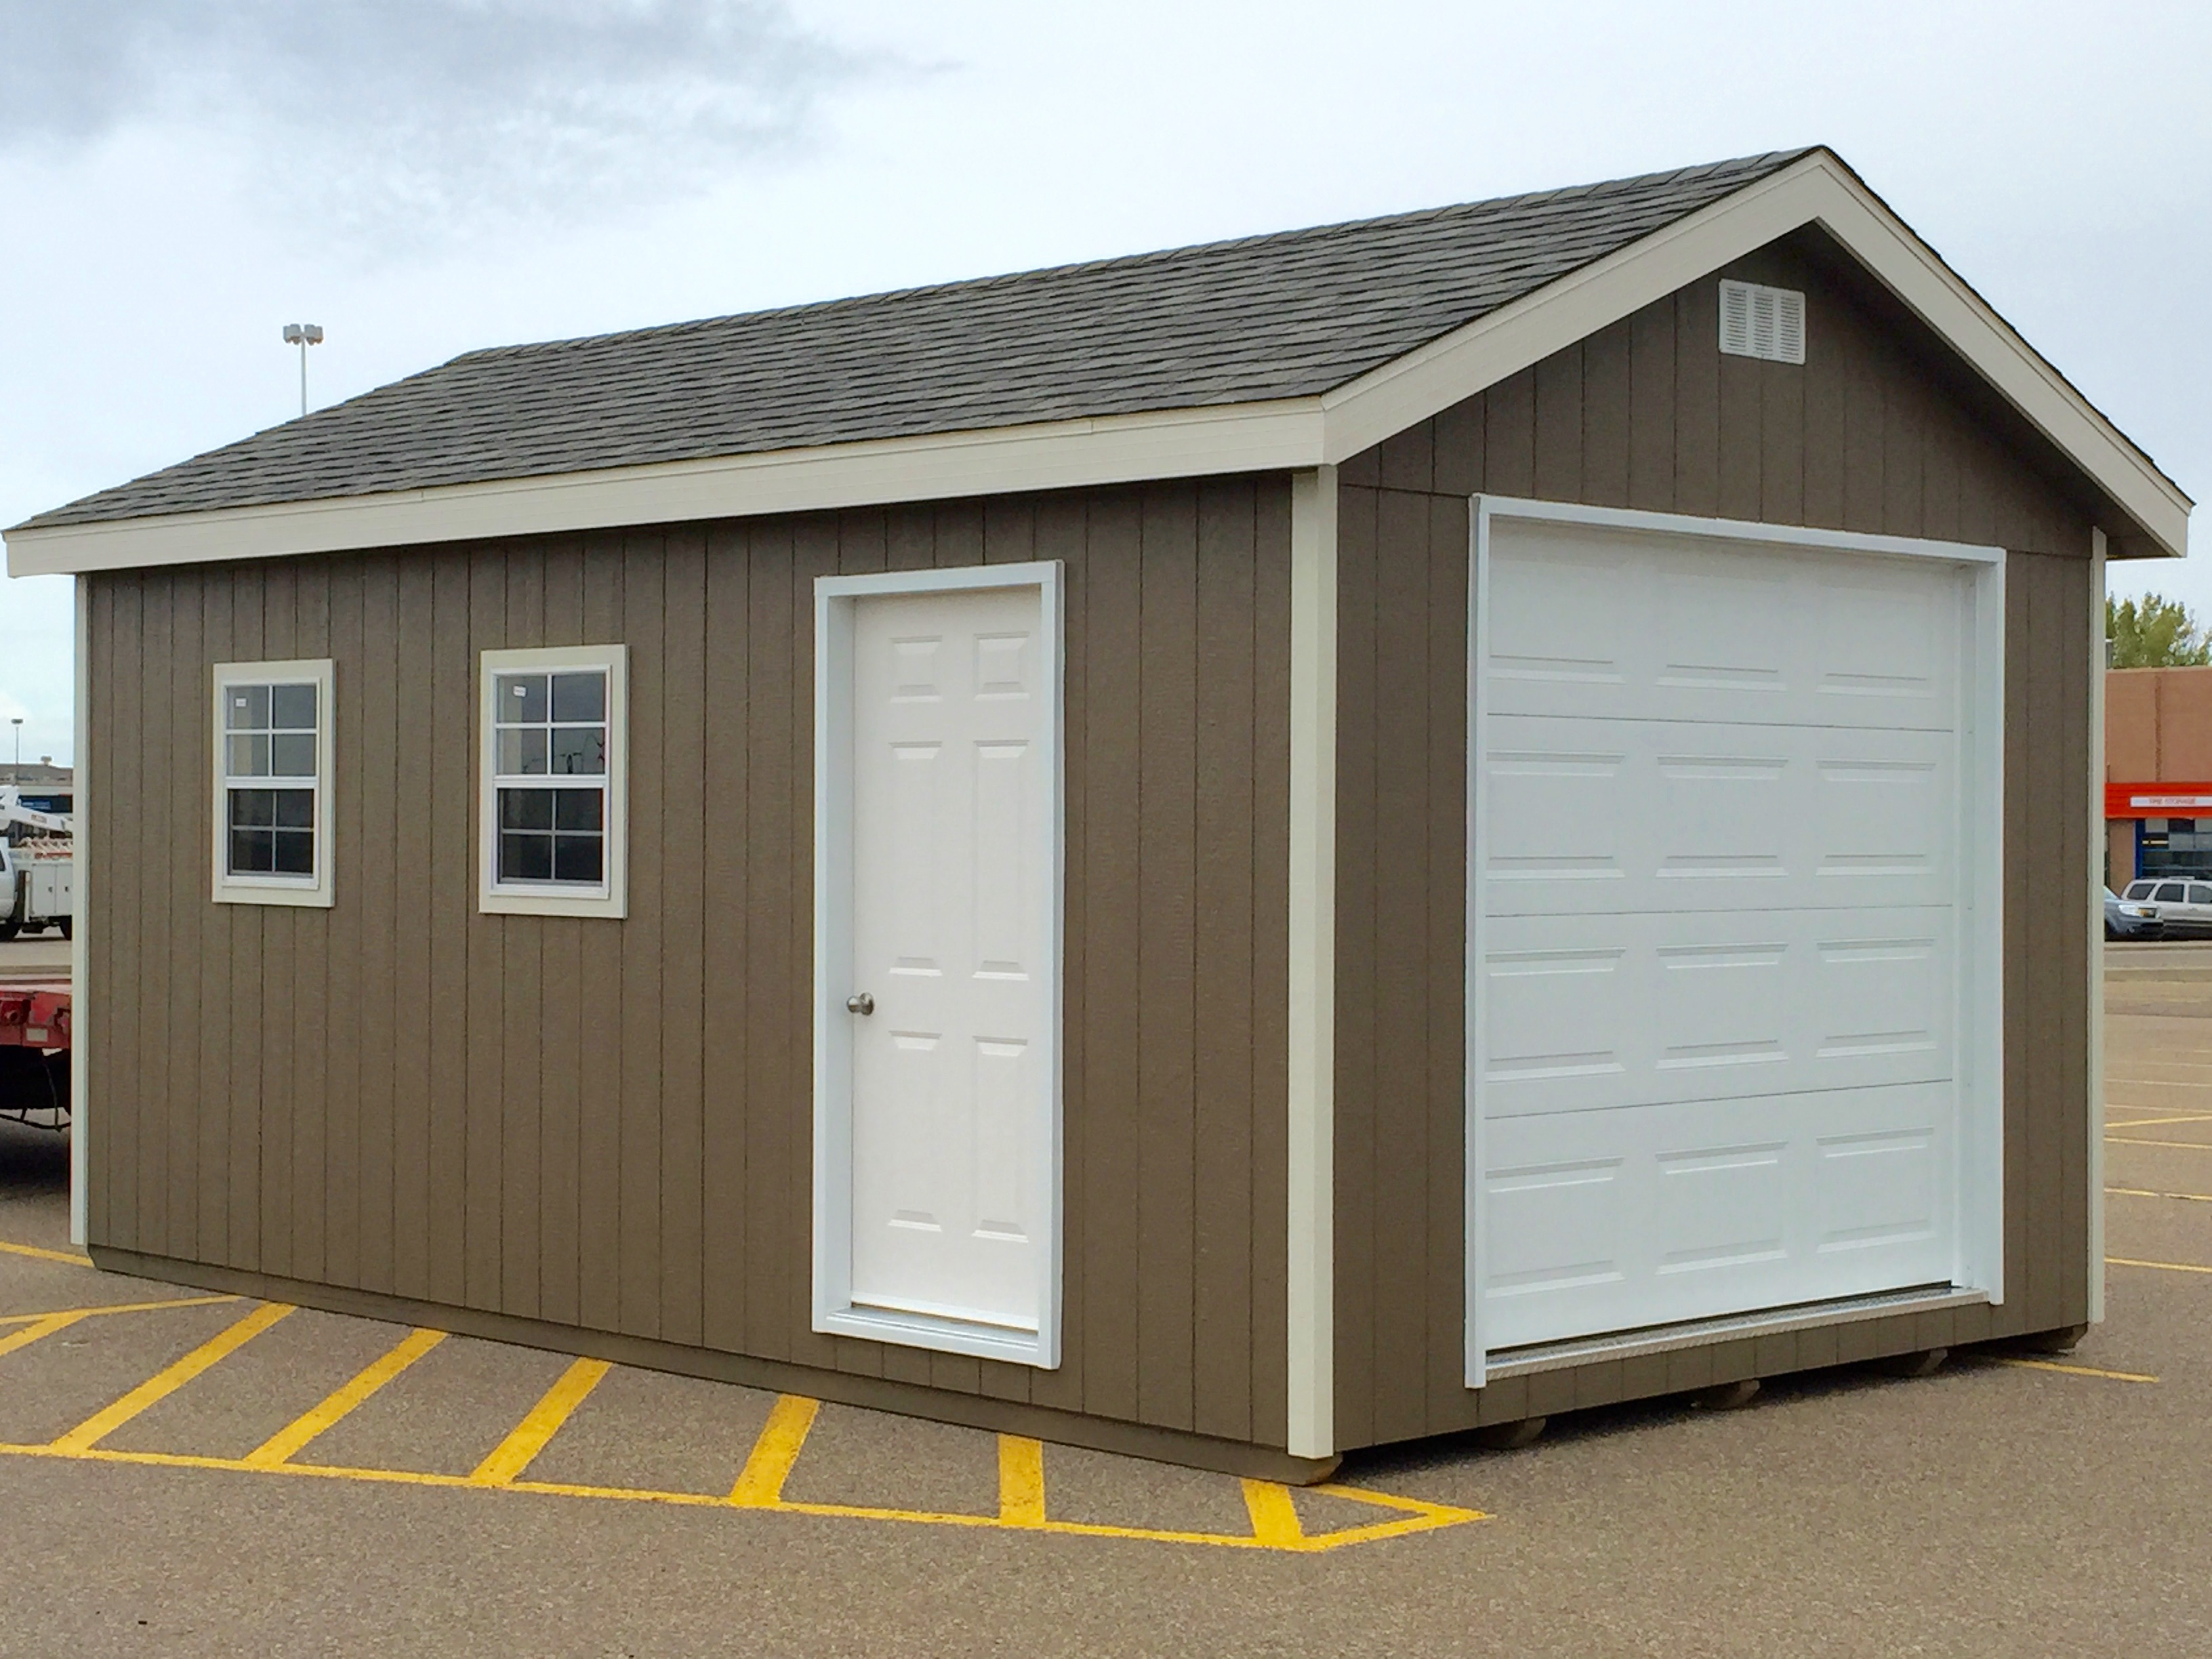 information us please call pricing structures ca today sizes wood cedarwoodstructures cedar info or garden and for gardensheds our email sheds siding shed more